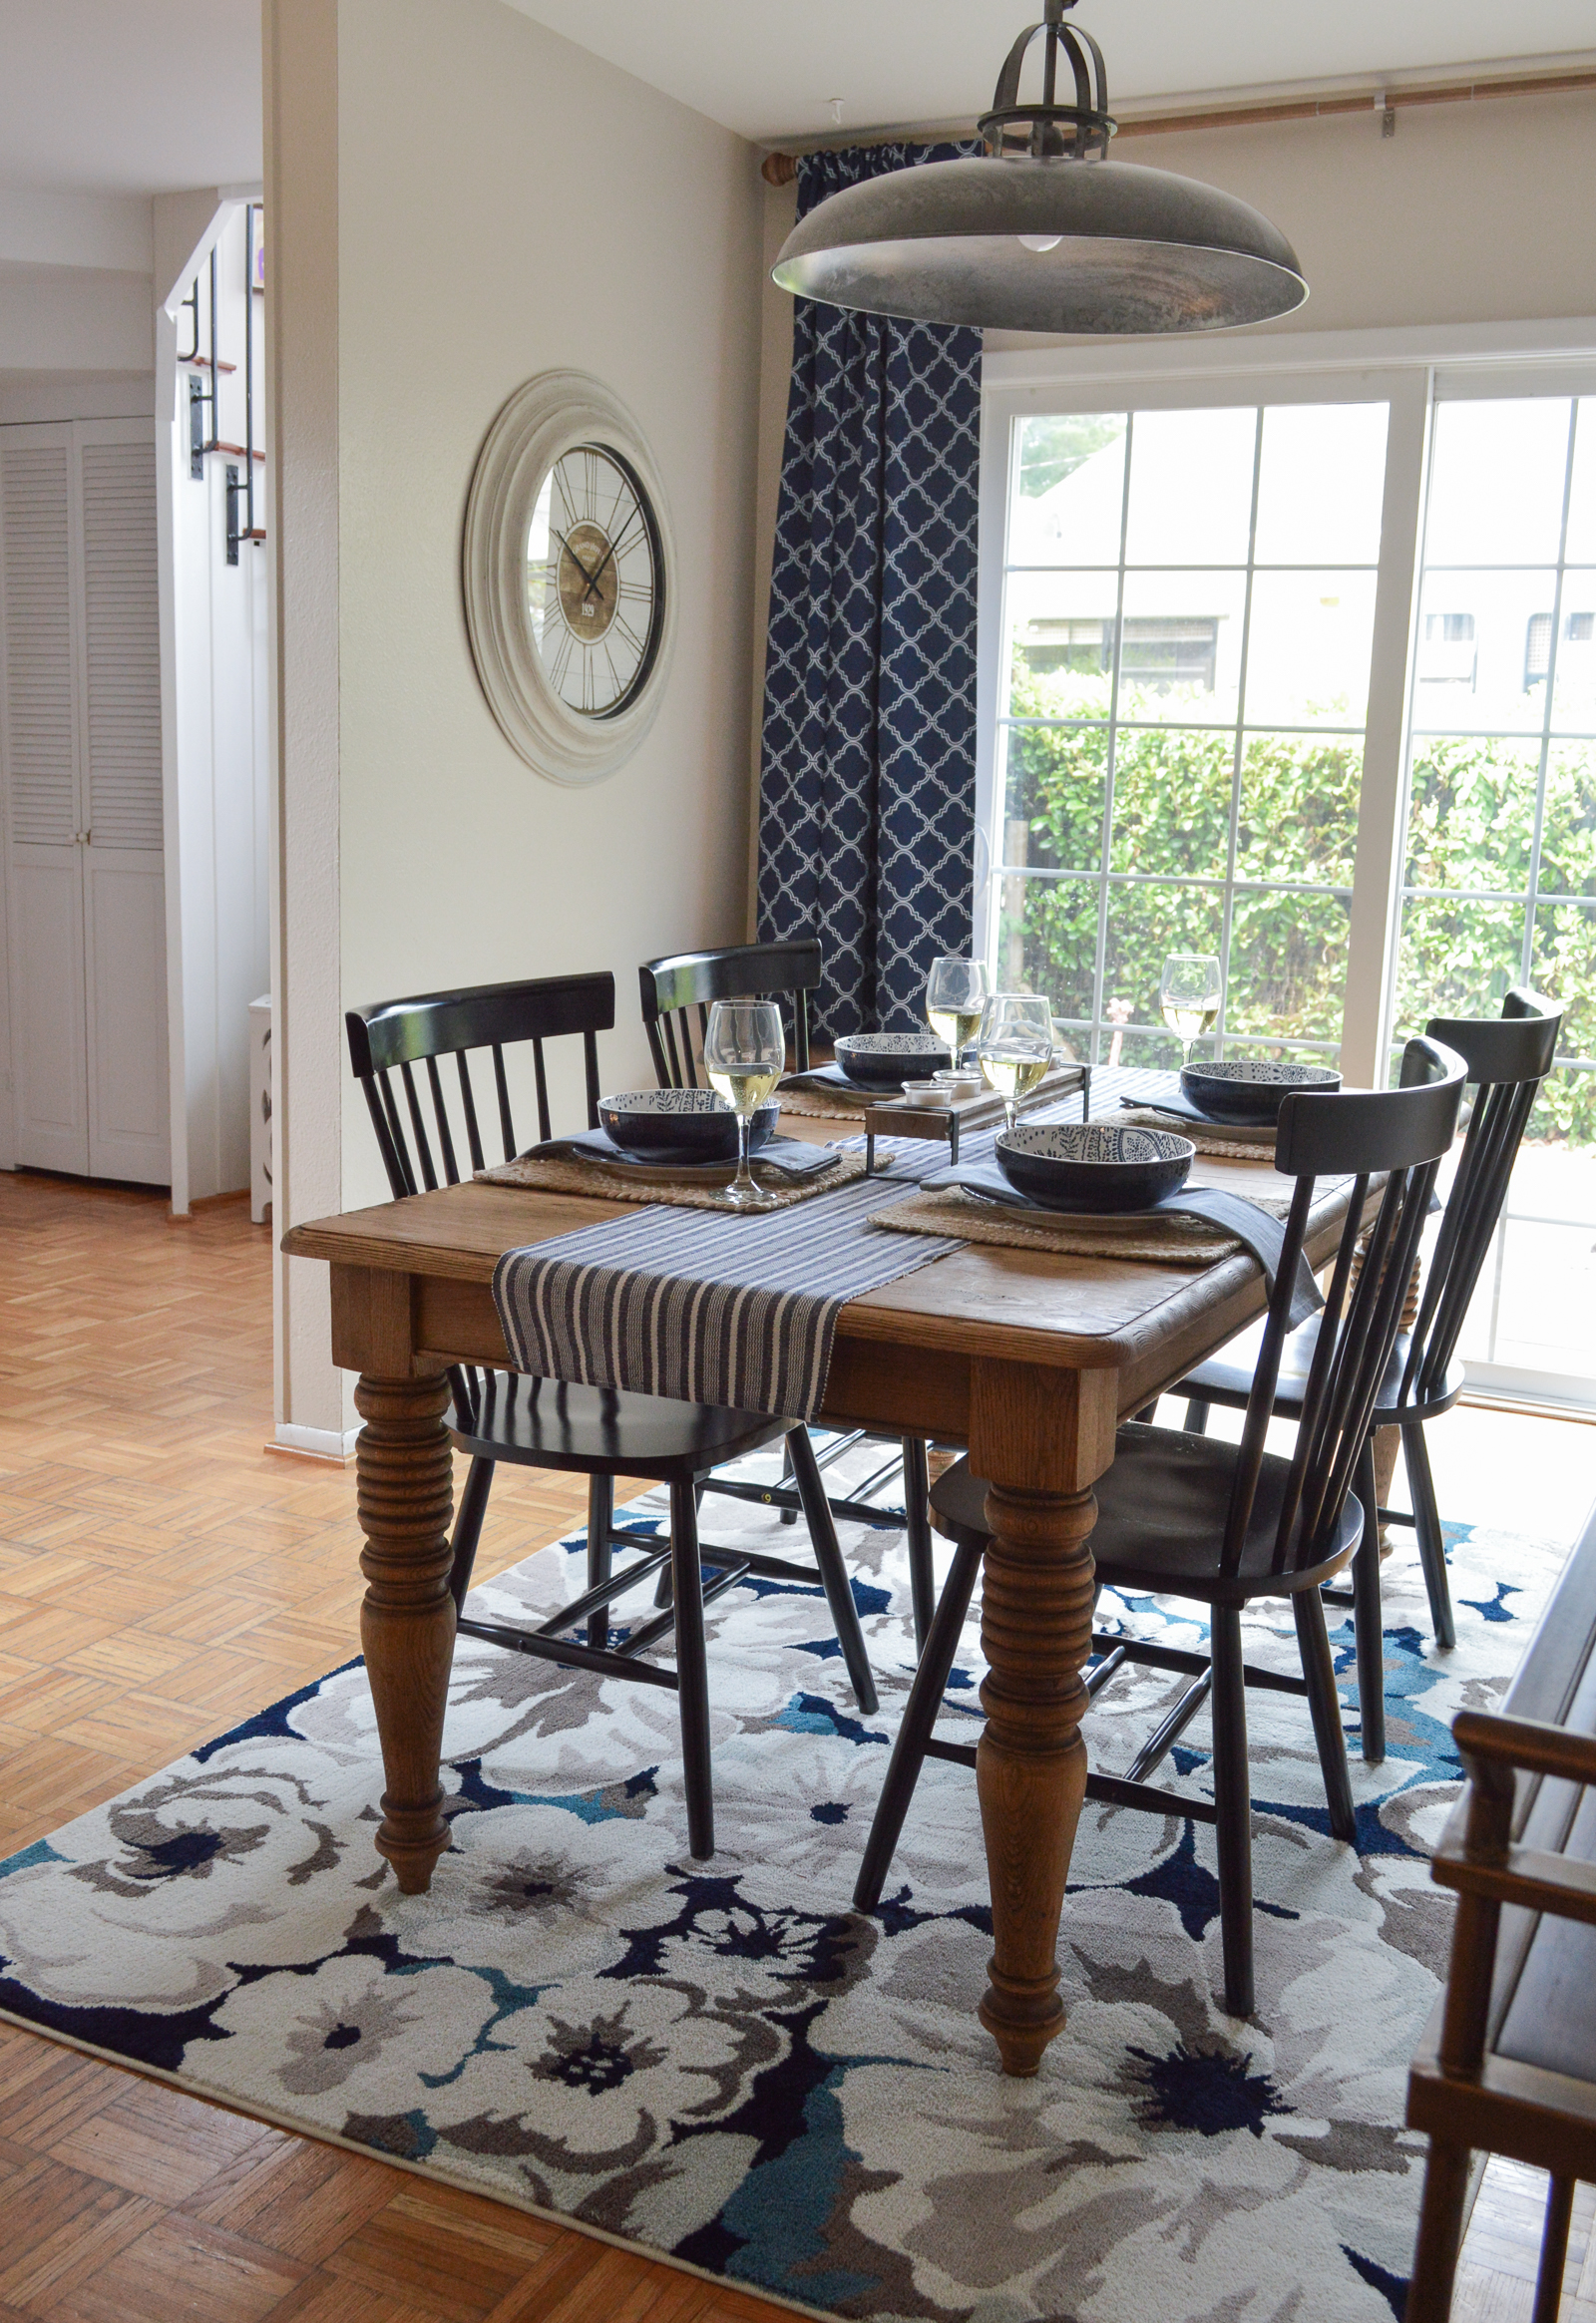 Small Space Dining Room Decorating Ideas, Before & After Makeover with Better Homes & Gardens from Walmart at foxhollowcottage.com #sponsored